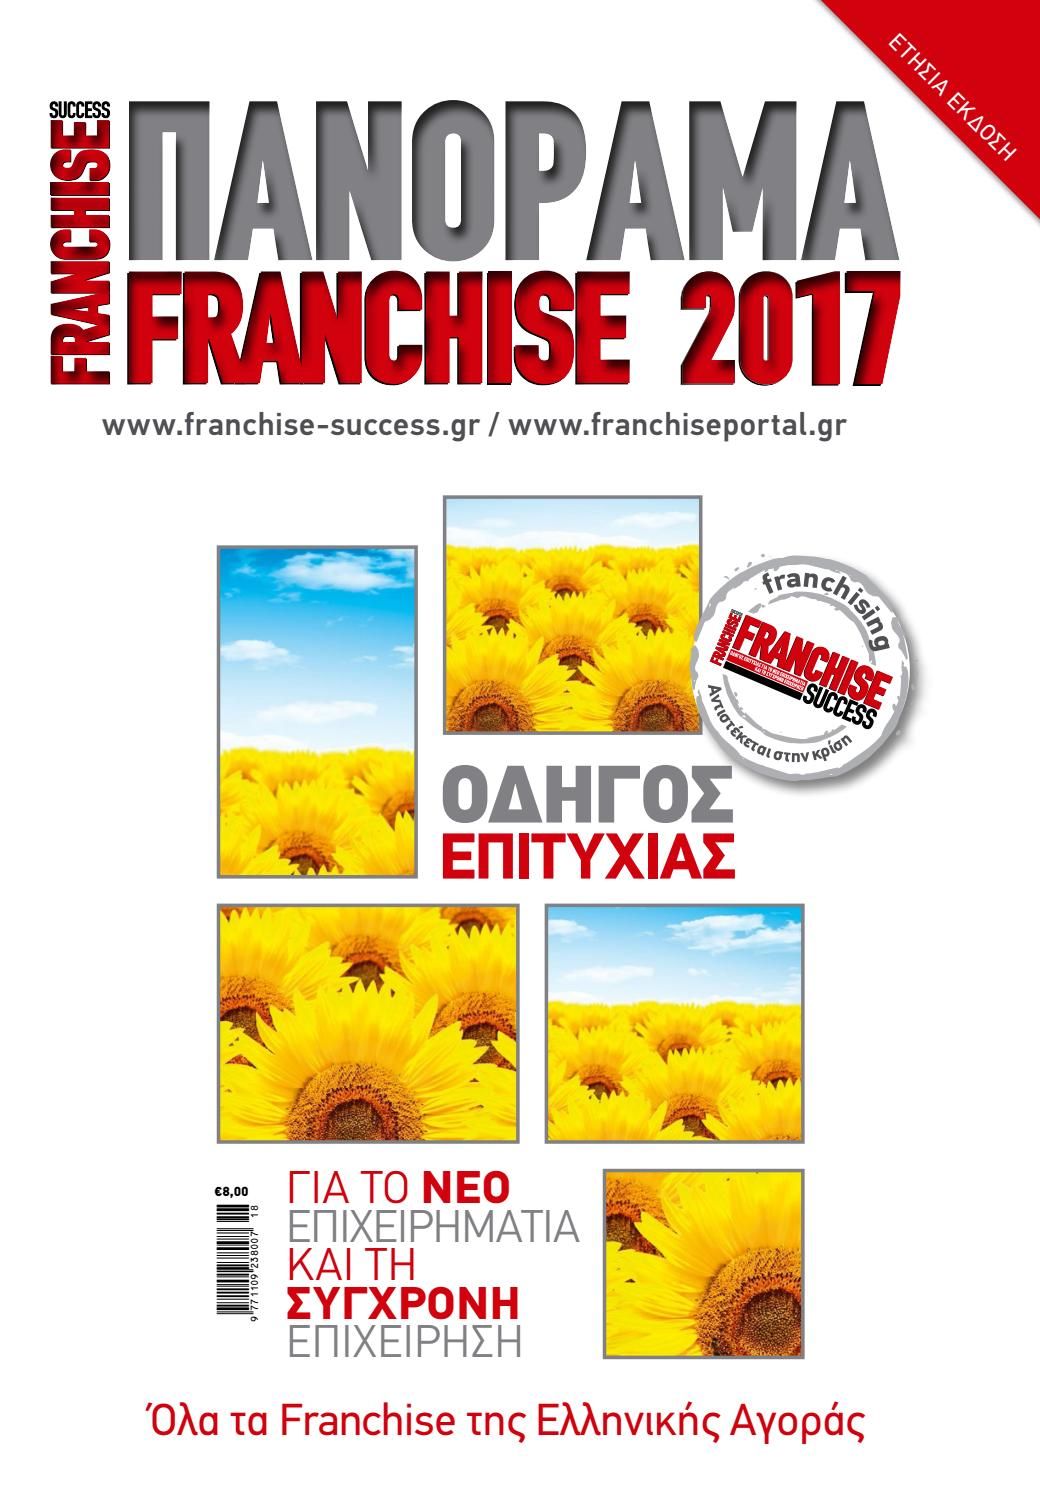 e5bd2650151 FRANCHISE SUCCESS Ετήσιος Οδηγός ΠΑΝΟΡΑΜΑ FRANCHISE 2017 by franchise  success - issuu